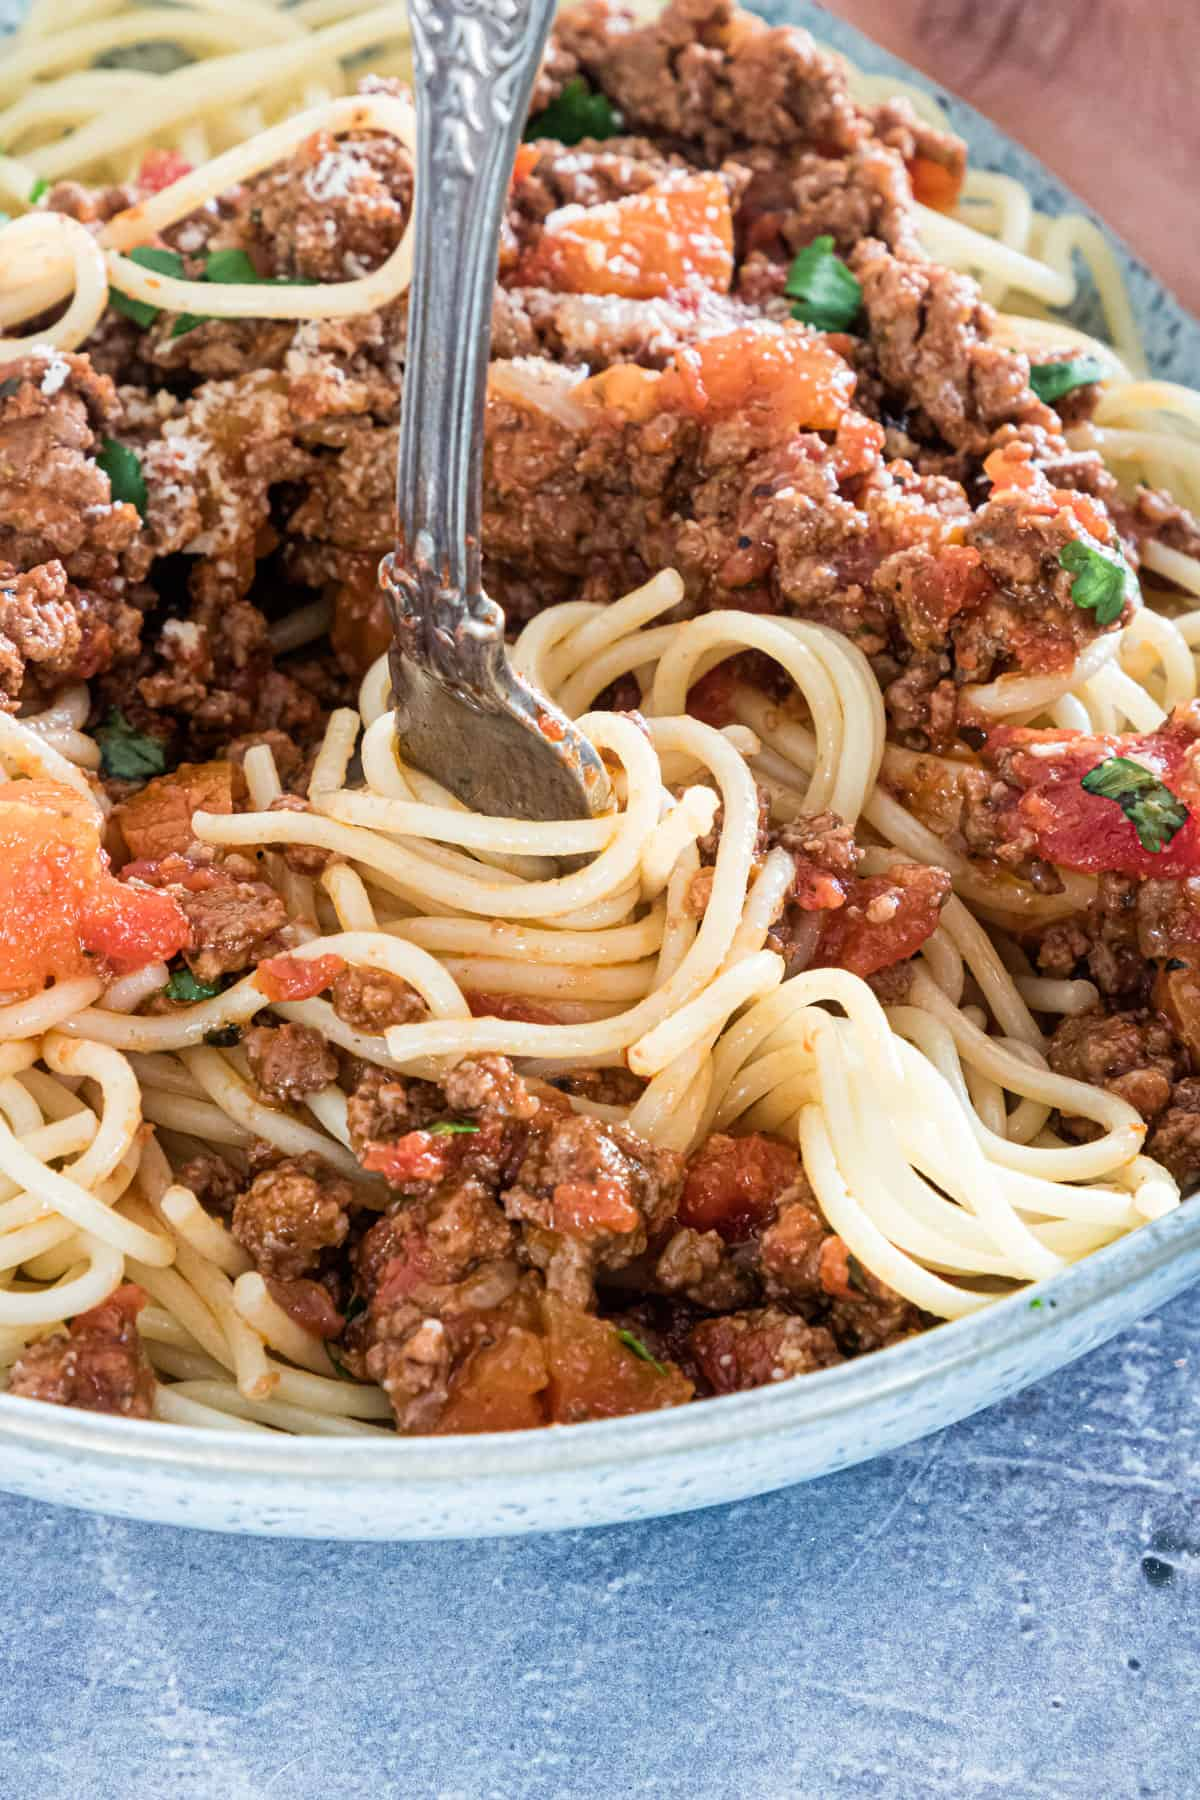 close up view of a fork removing a portion of bolognese sauce and pasta from a dish